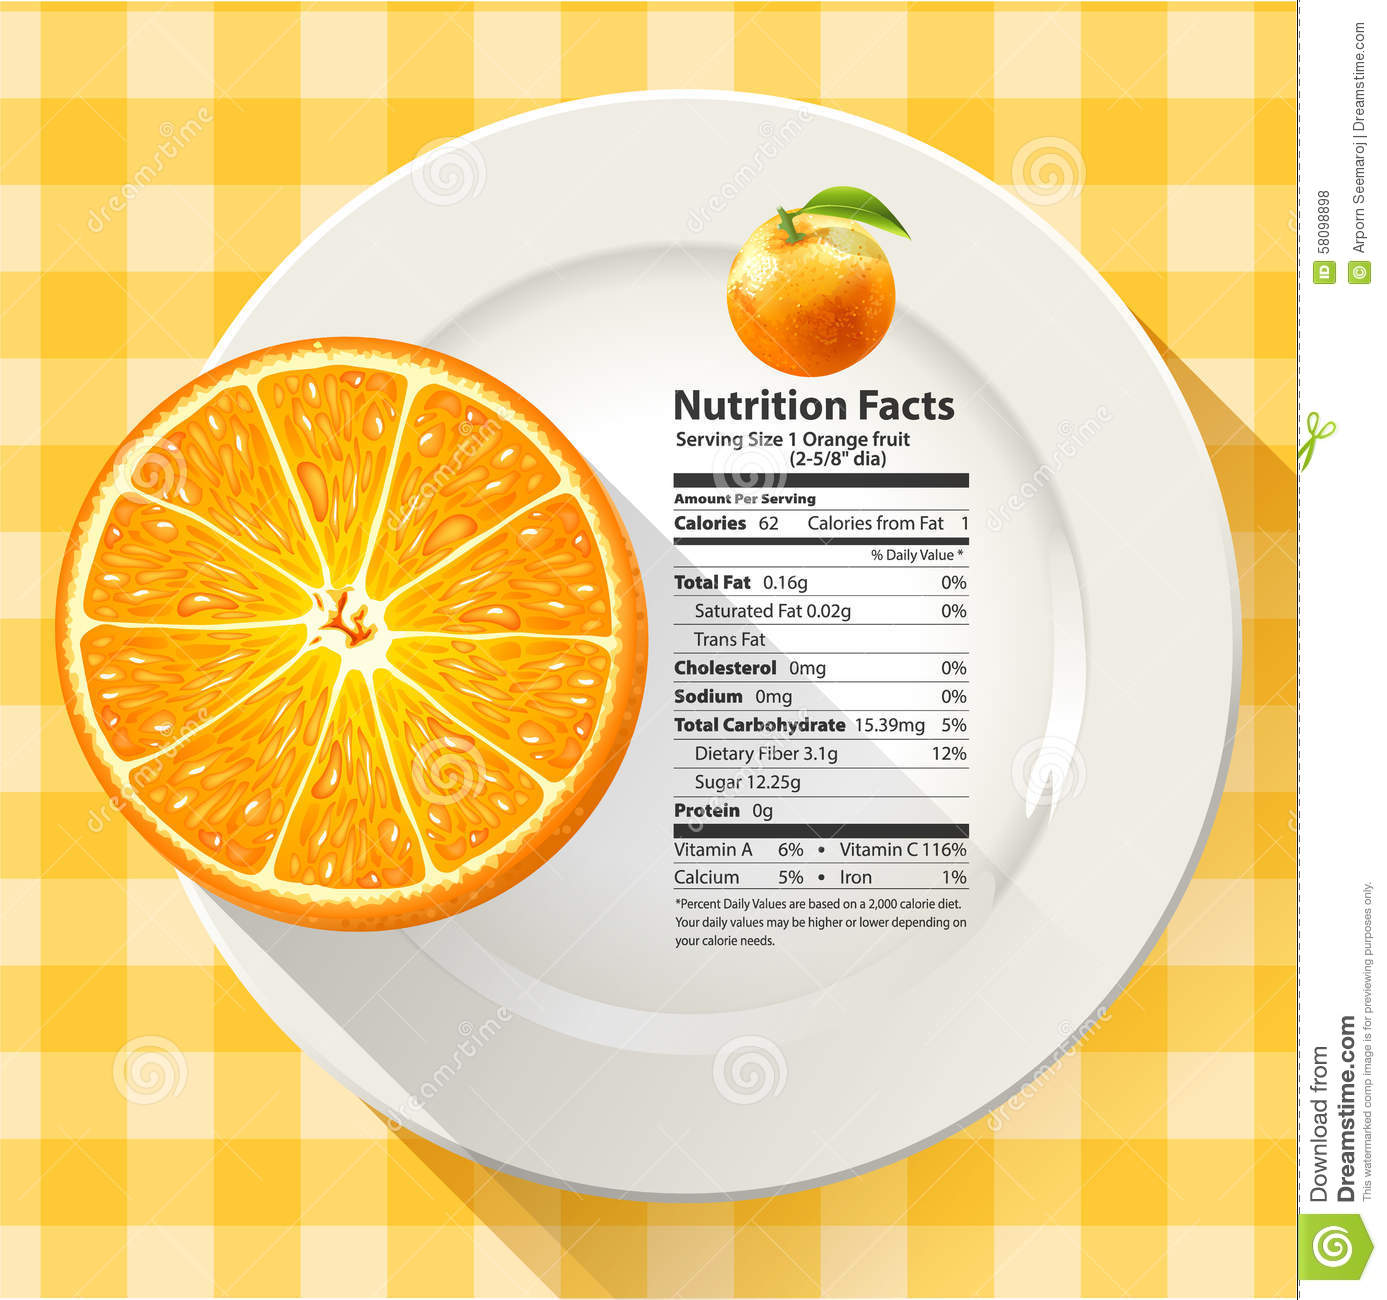 Vector Of Nutrition Facts Serving Size 1 Orange Fruit Stock Vector Illustration Of Background Orange 58098898